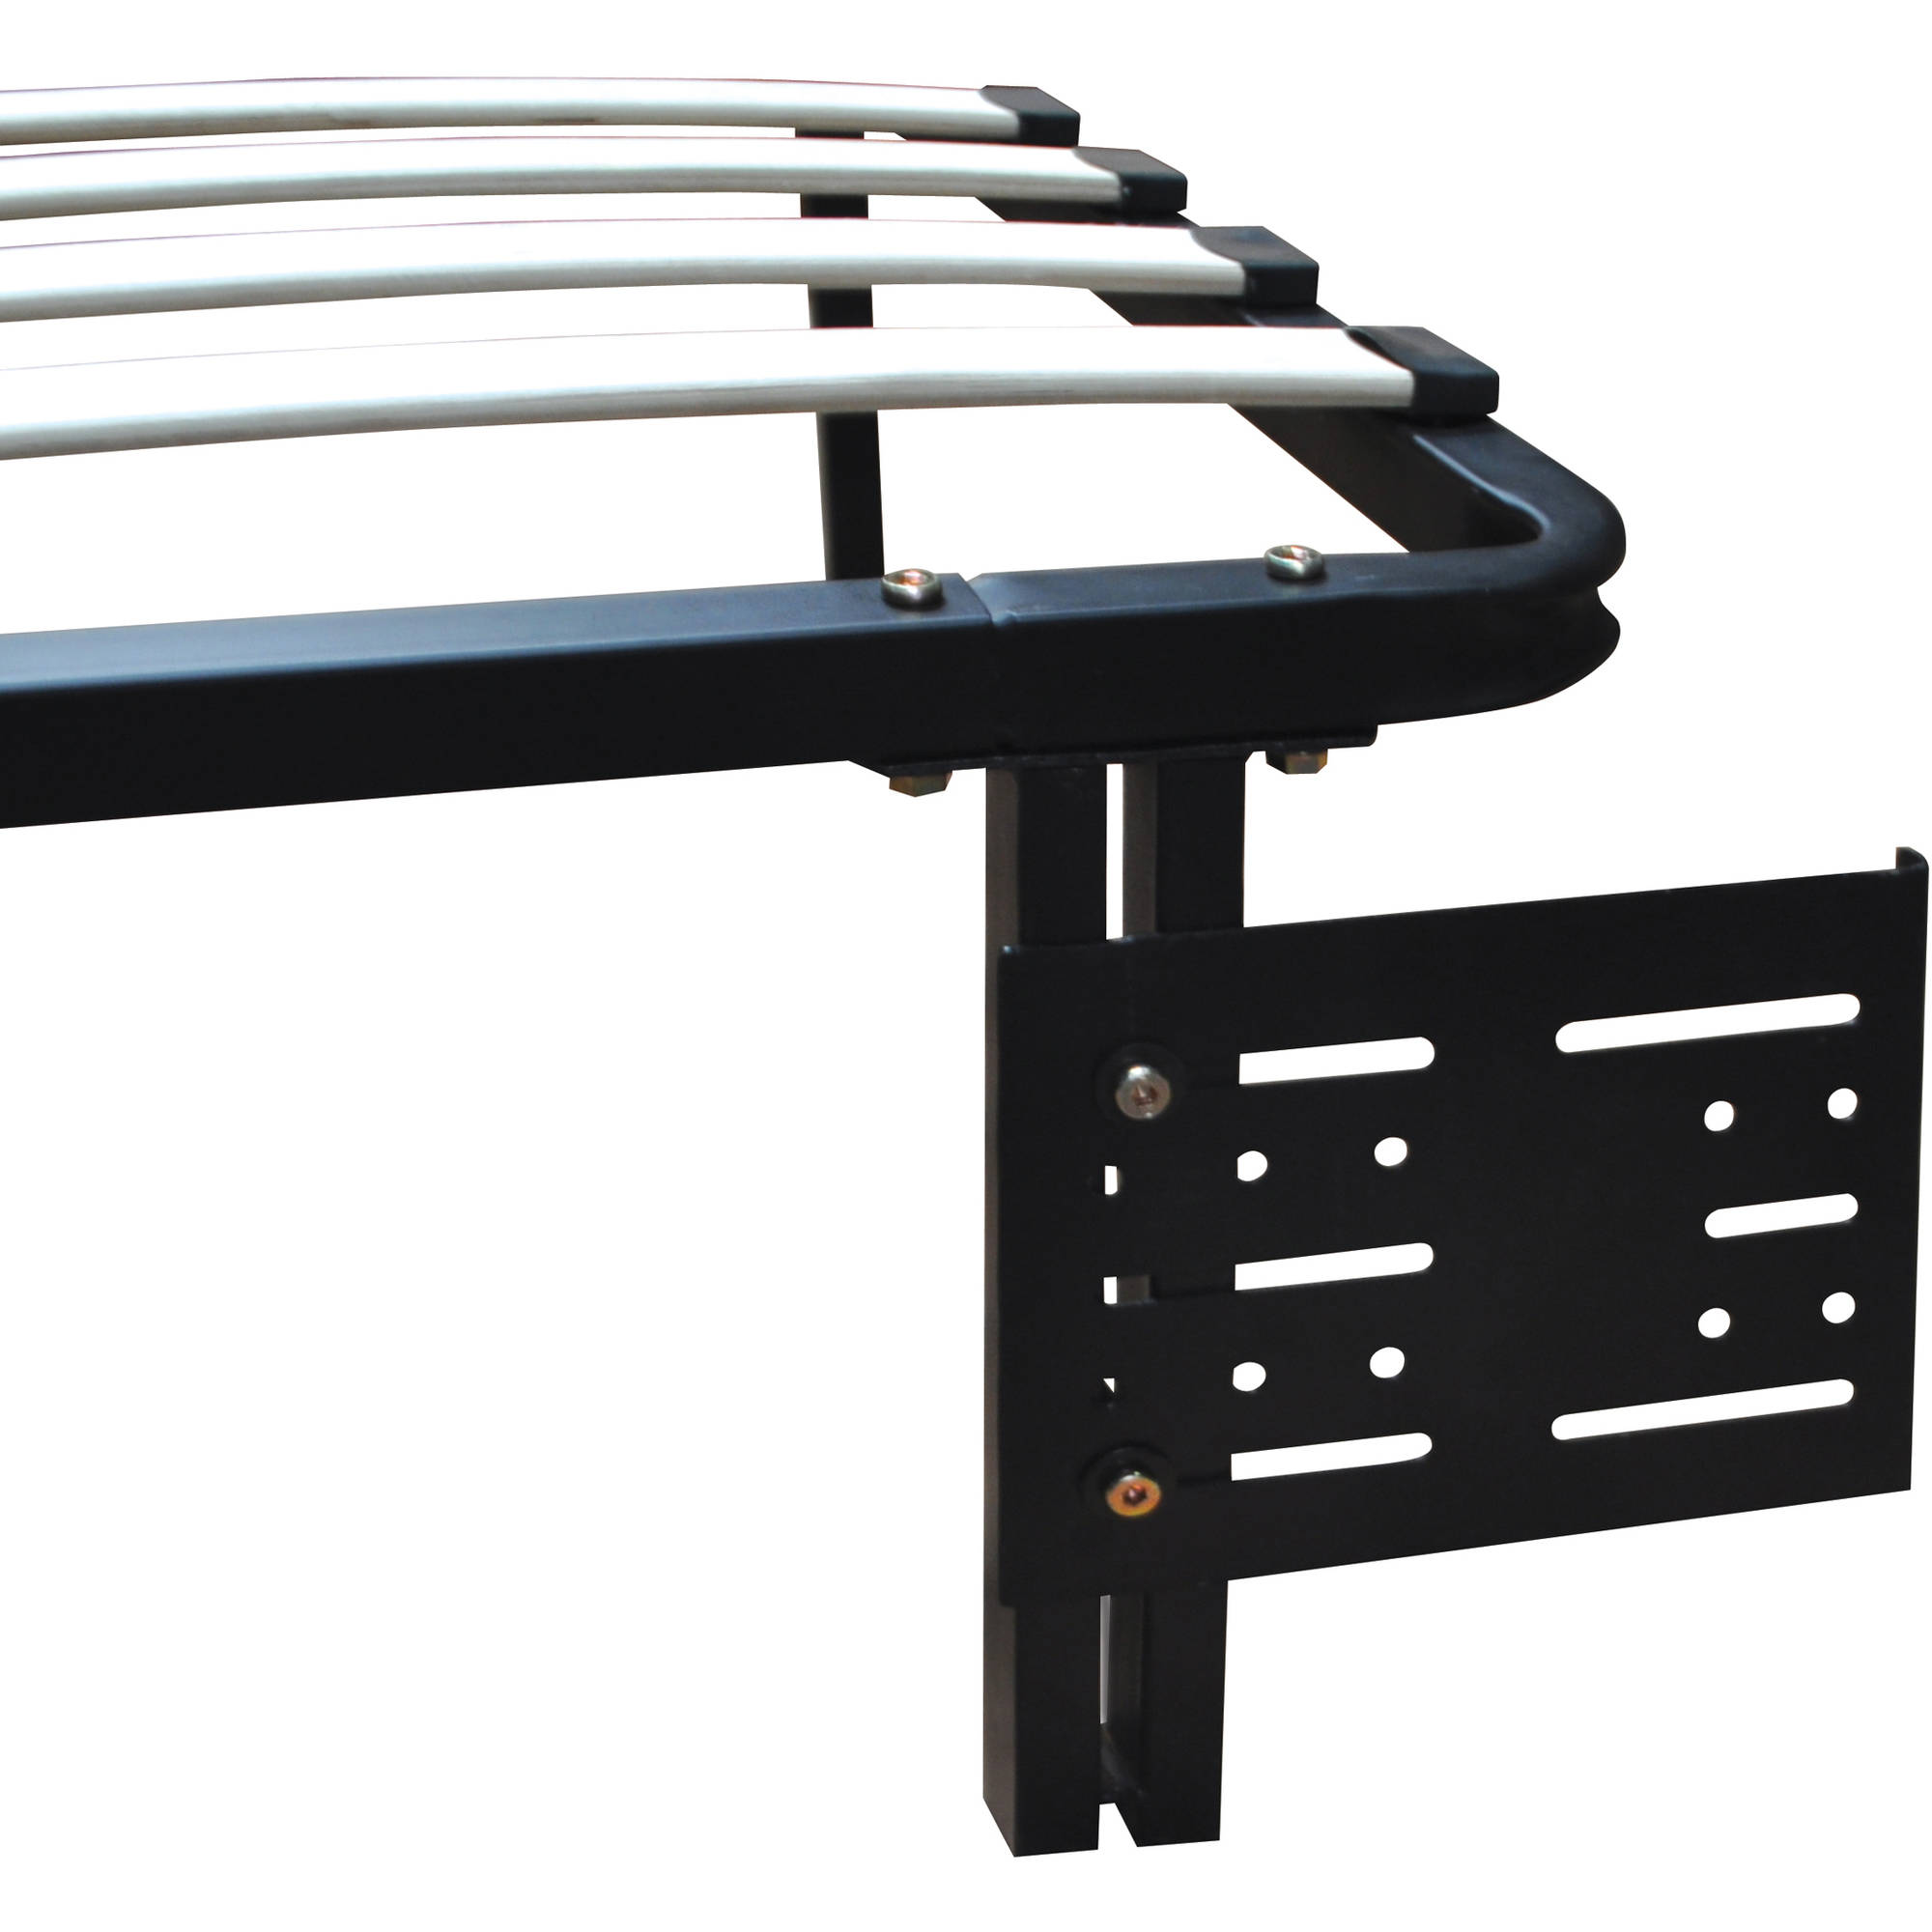 in inspiration queen incredible headboard bed footboard innovation of conversion design headboards frame full brackets ideas size super and bold magnificent with metal